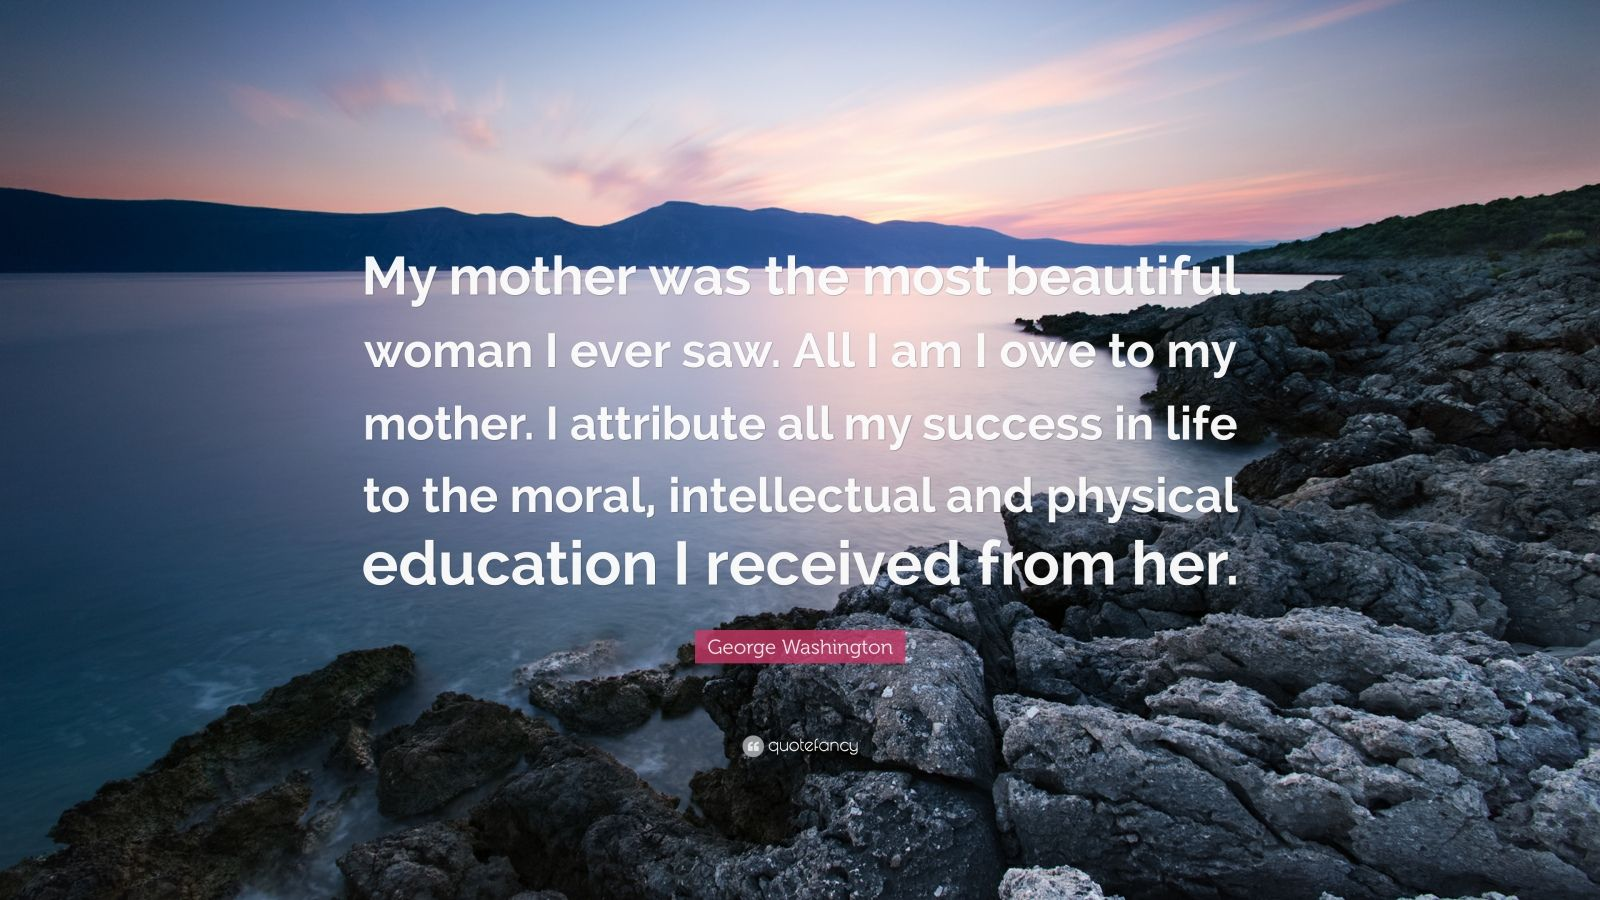 "George Washington Quote: ""My mother was the most beautiful woman I ever saw. All I am I owe to my mother. I attribute all my success in life to the moral, intellectual and physical education I received from her."""